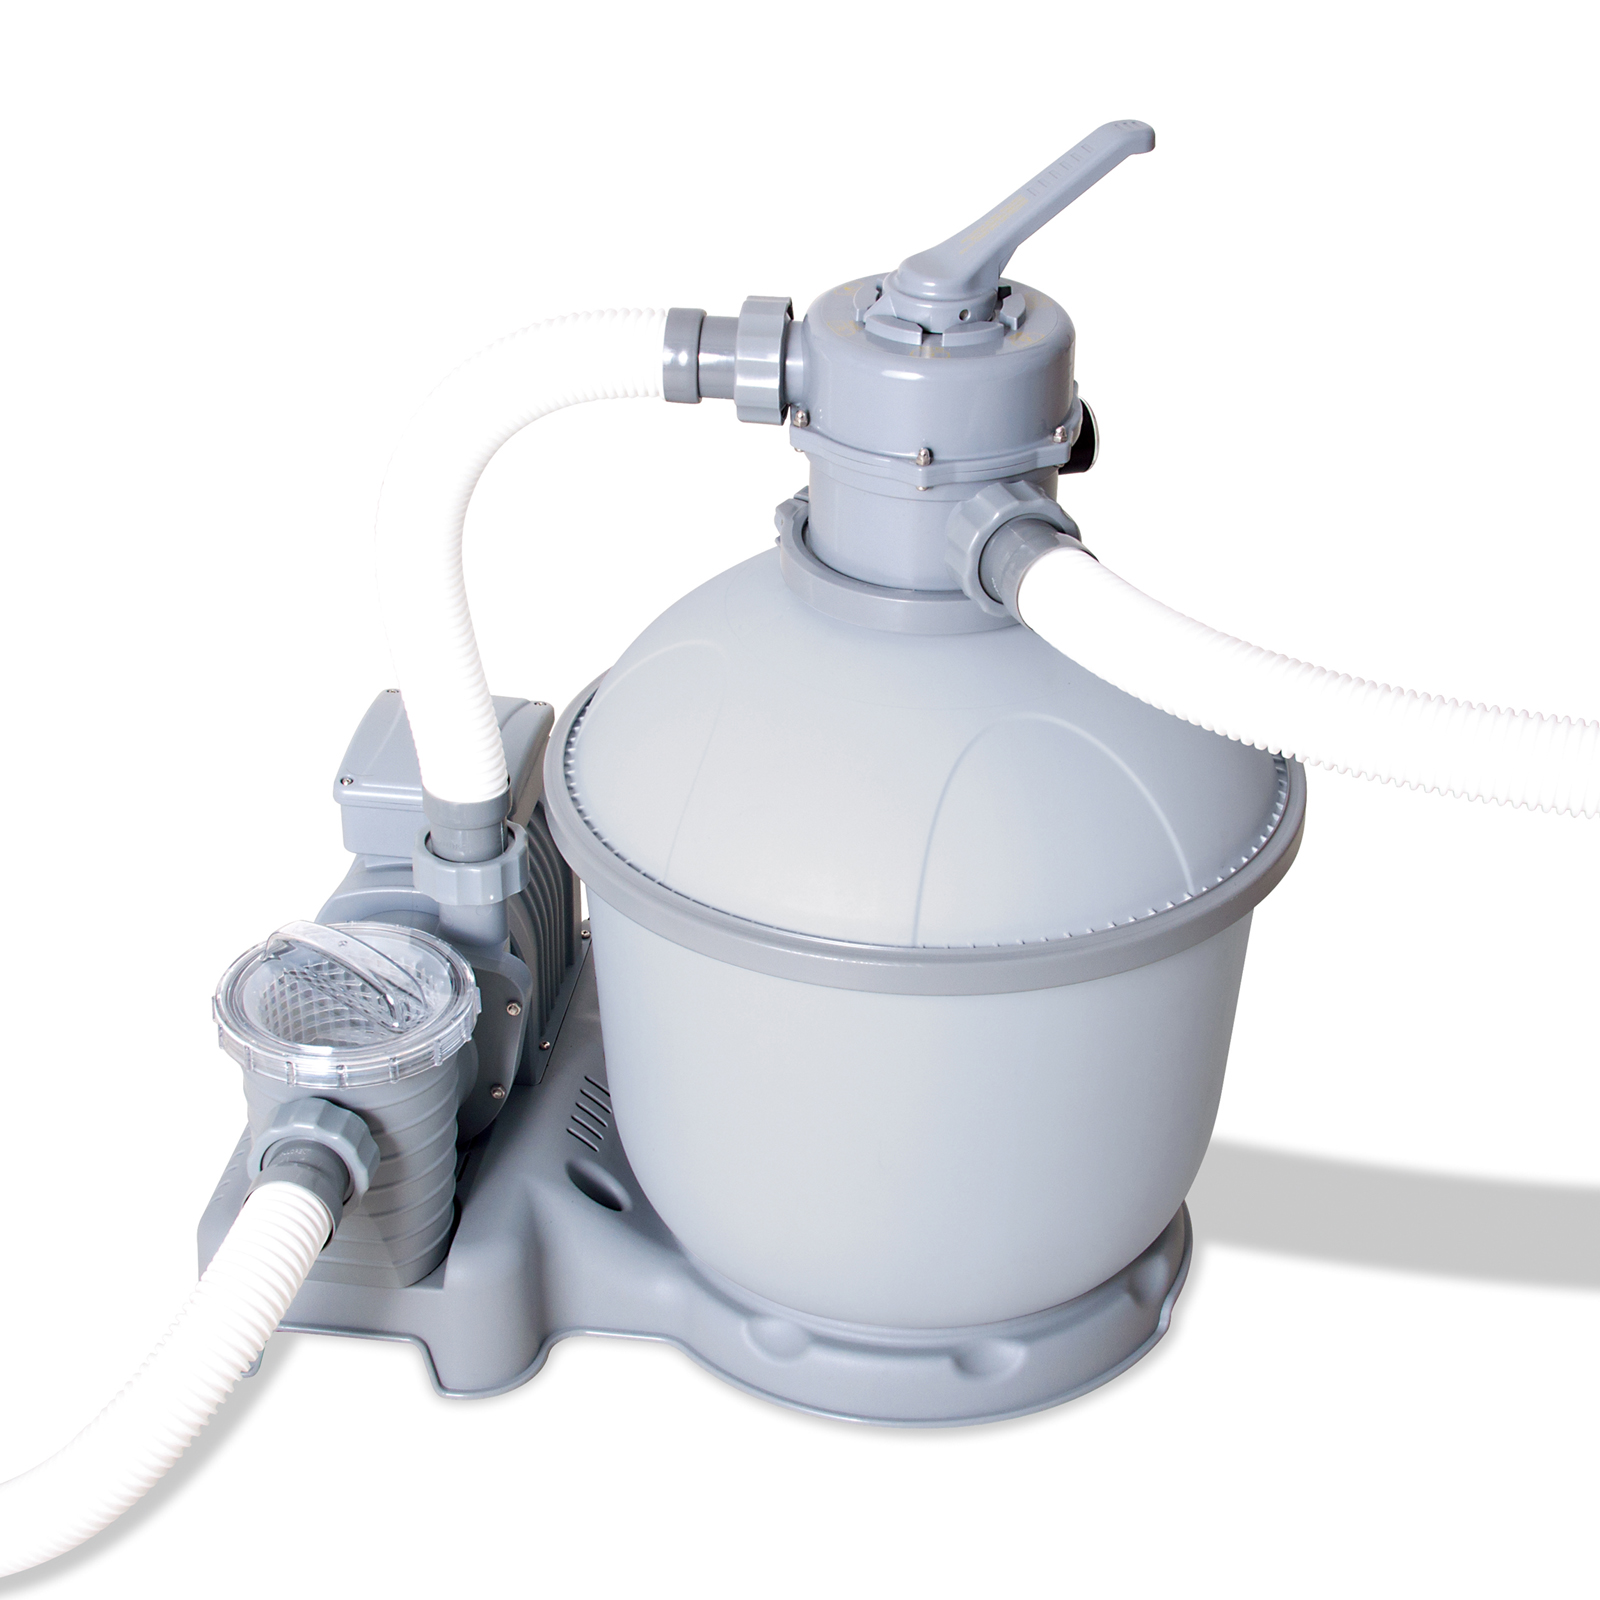 Pool Filter Pump Model 638g Bestway Flowclear 1500 Gallon Sand Filter